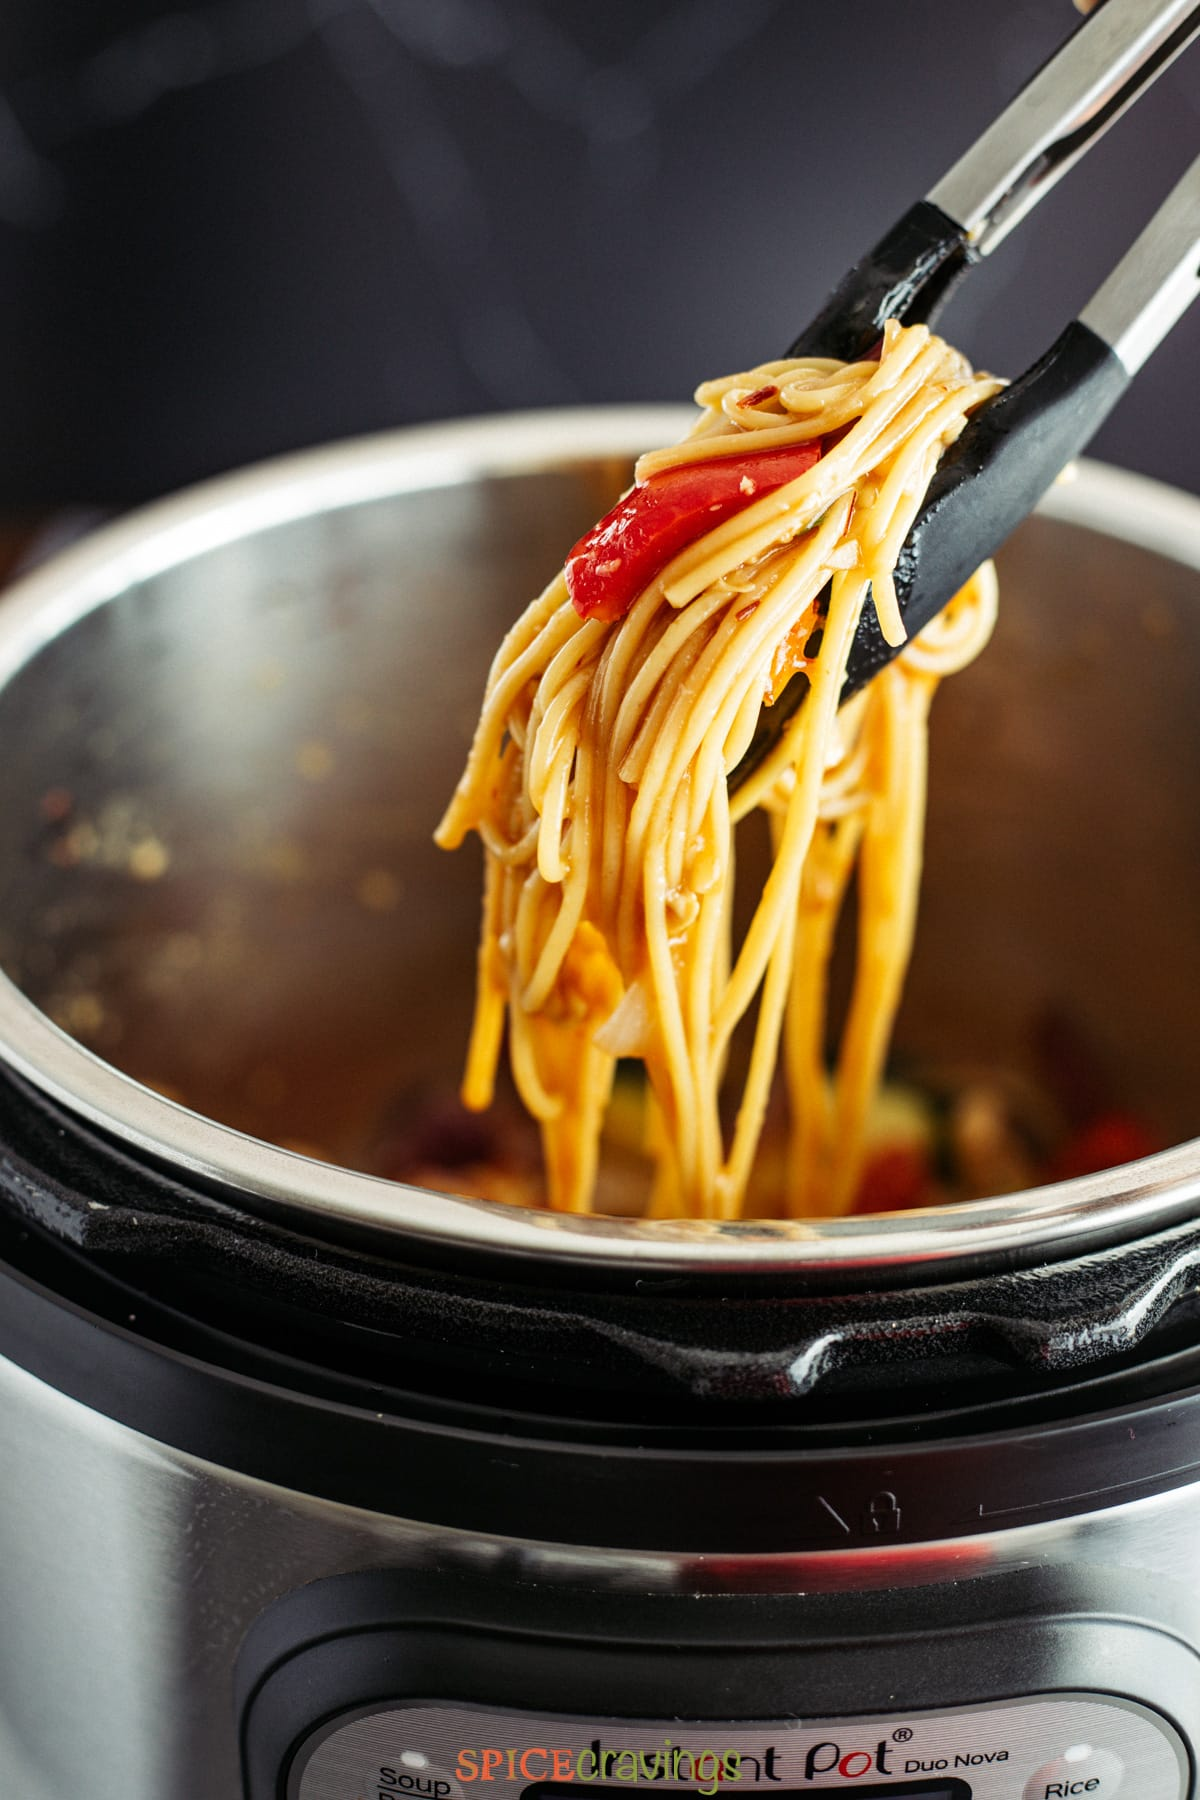 Noodles being lifted with tongs from an Instant Pot